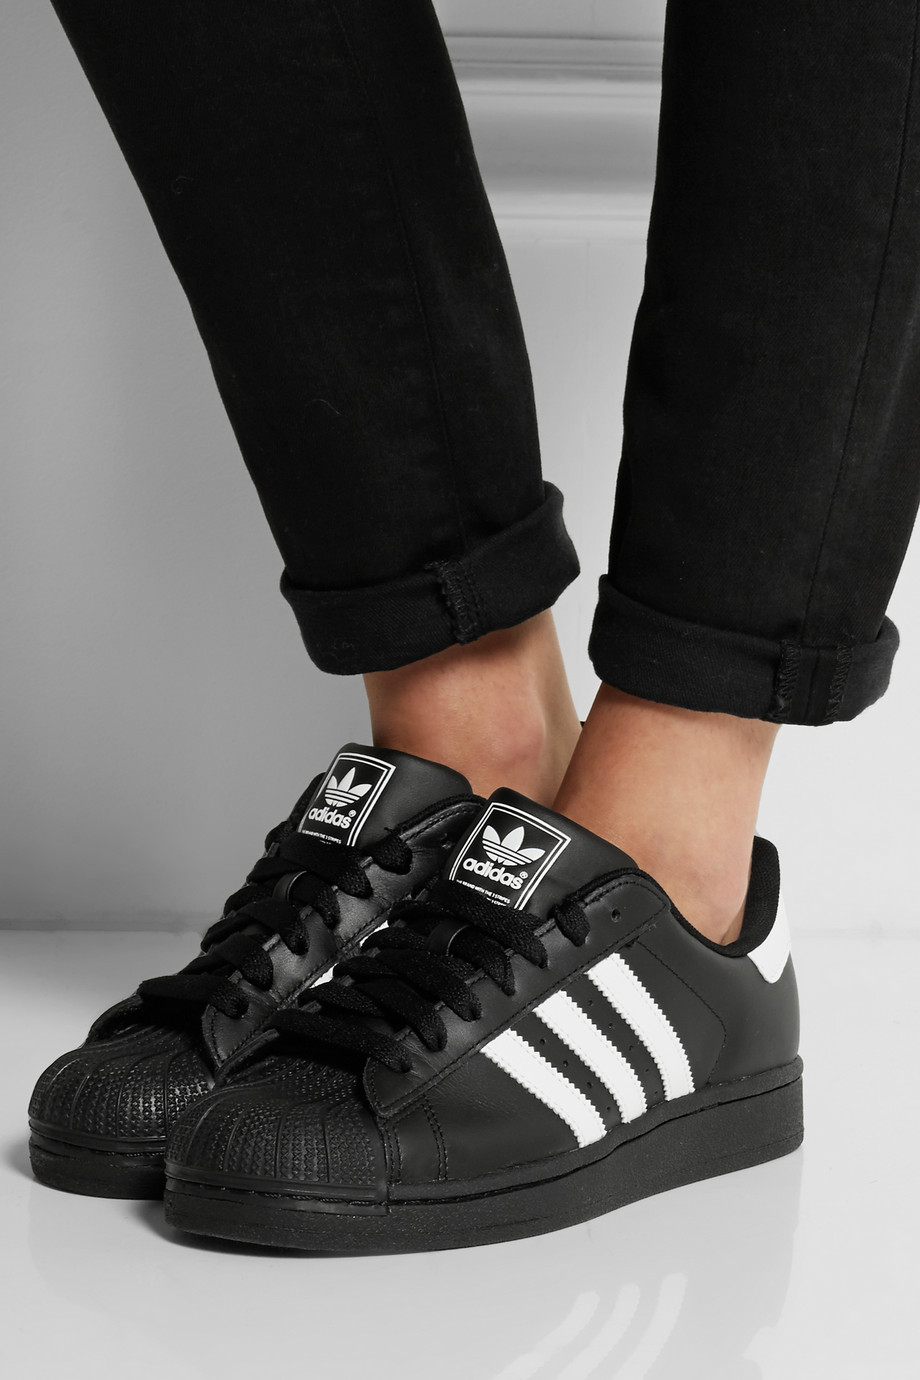 Adidas Black Shoes Women Neo Outfit